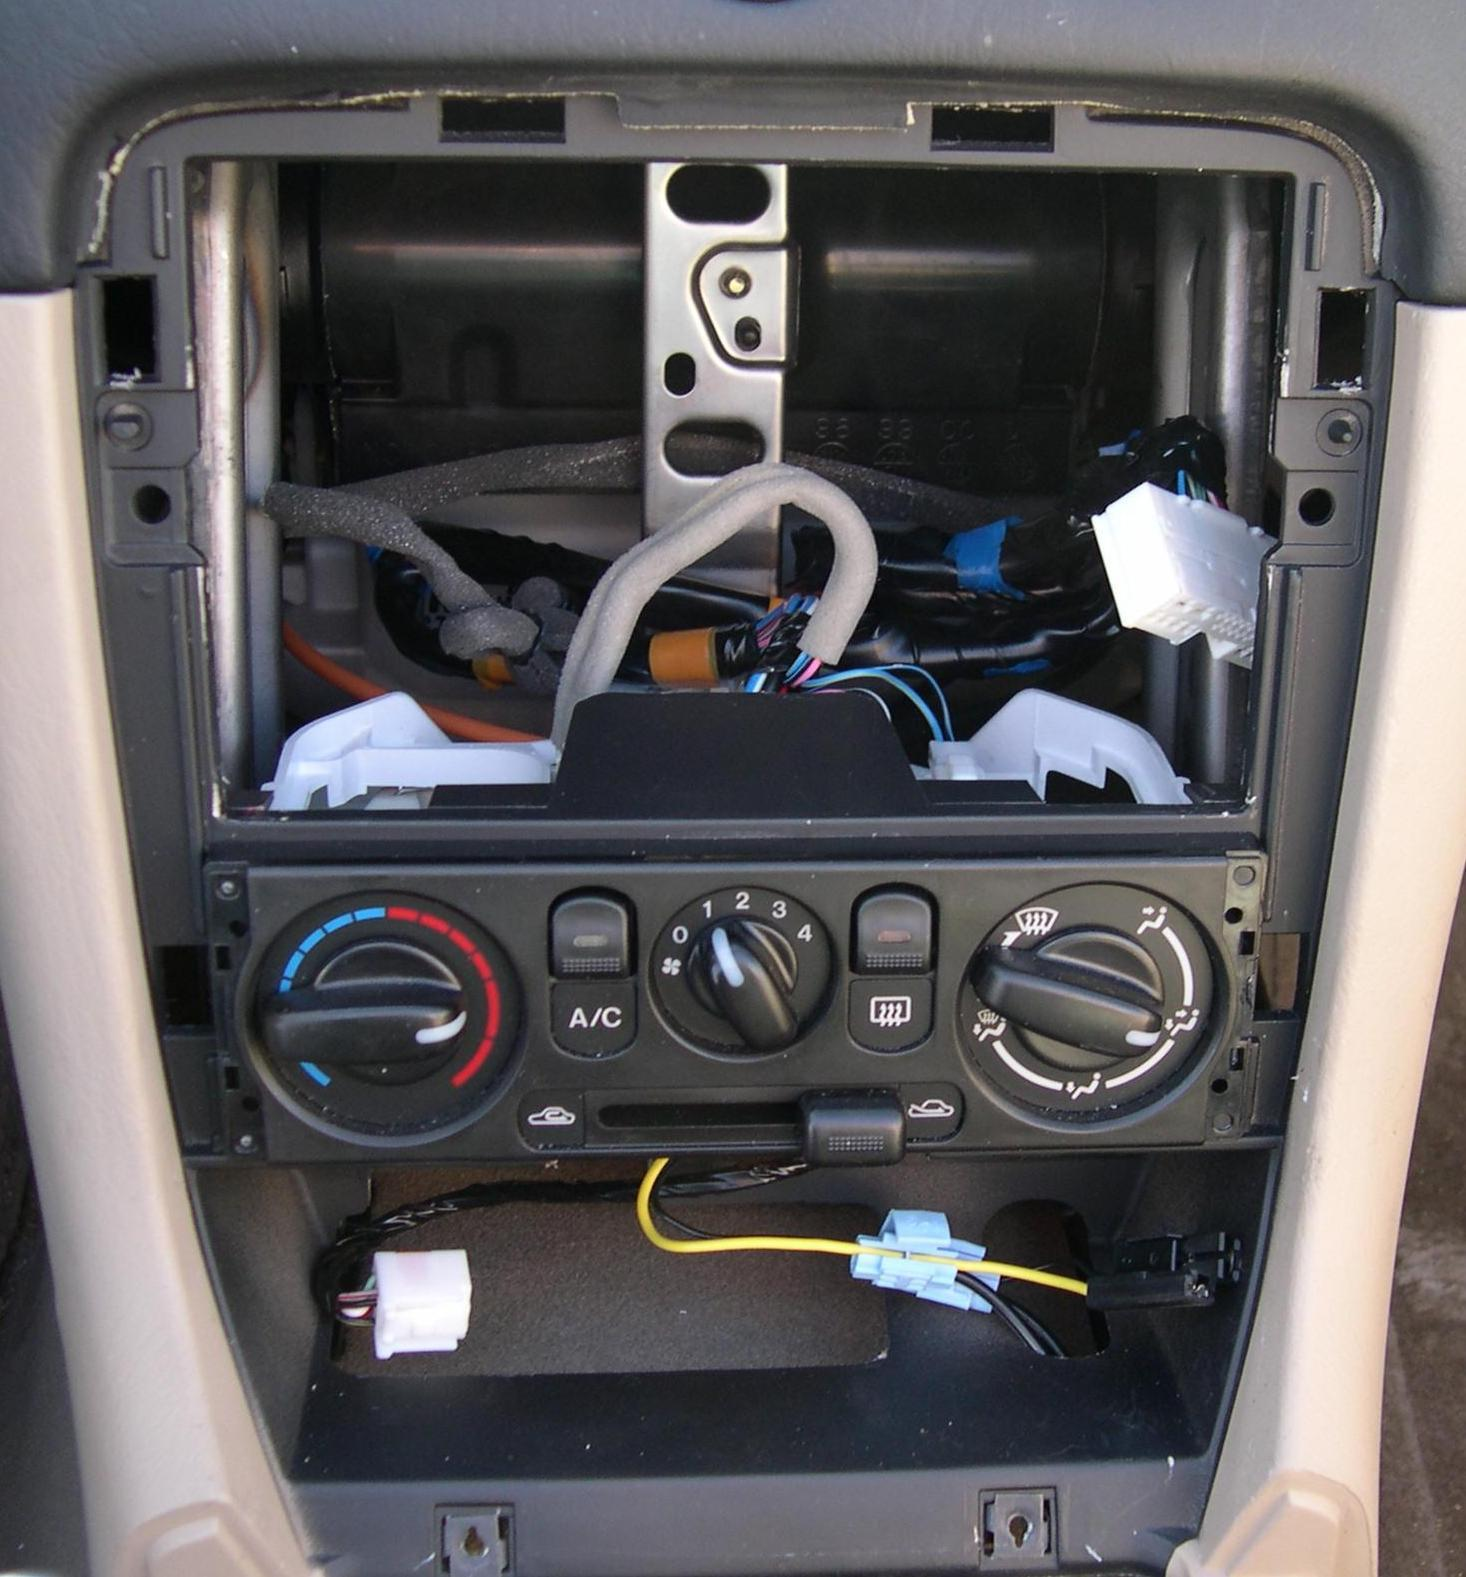 The mazda nb oem audio system faq on 1991 mazda miata radio wiring diagram Mazda 2600B Engine Diagram 2004 Mazda 3 Wiring Diagrams